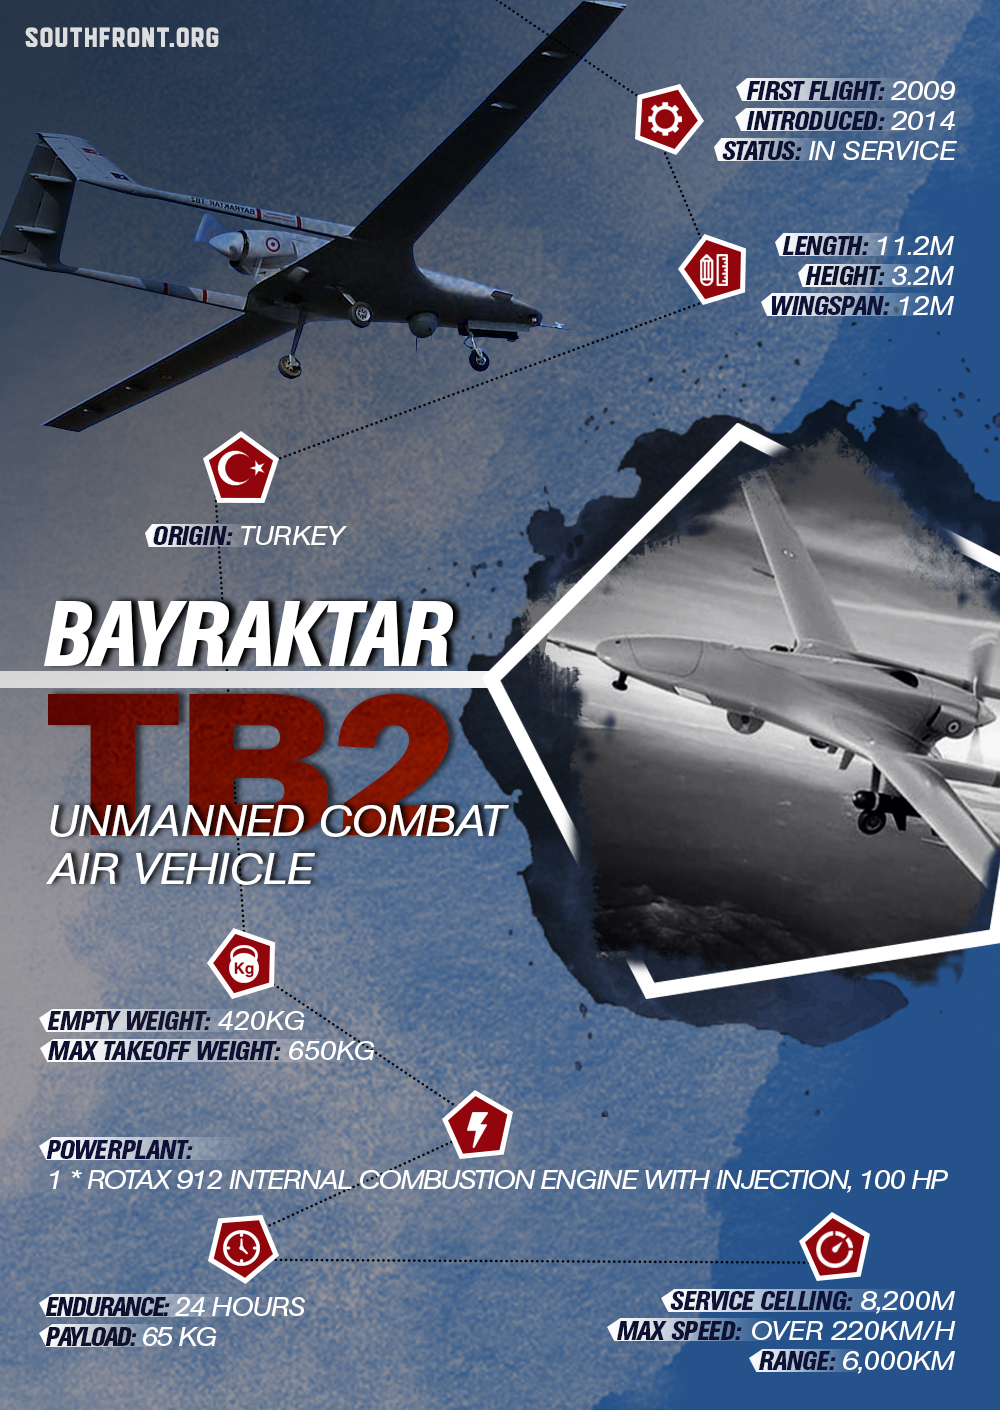 Libyan Army Shot Down 24 Turkish Bayraktar Combat Drones In Last Six Months (Infographic)